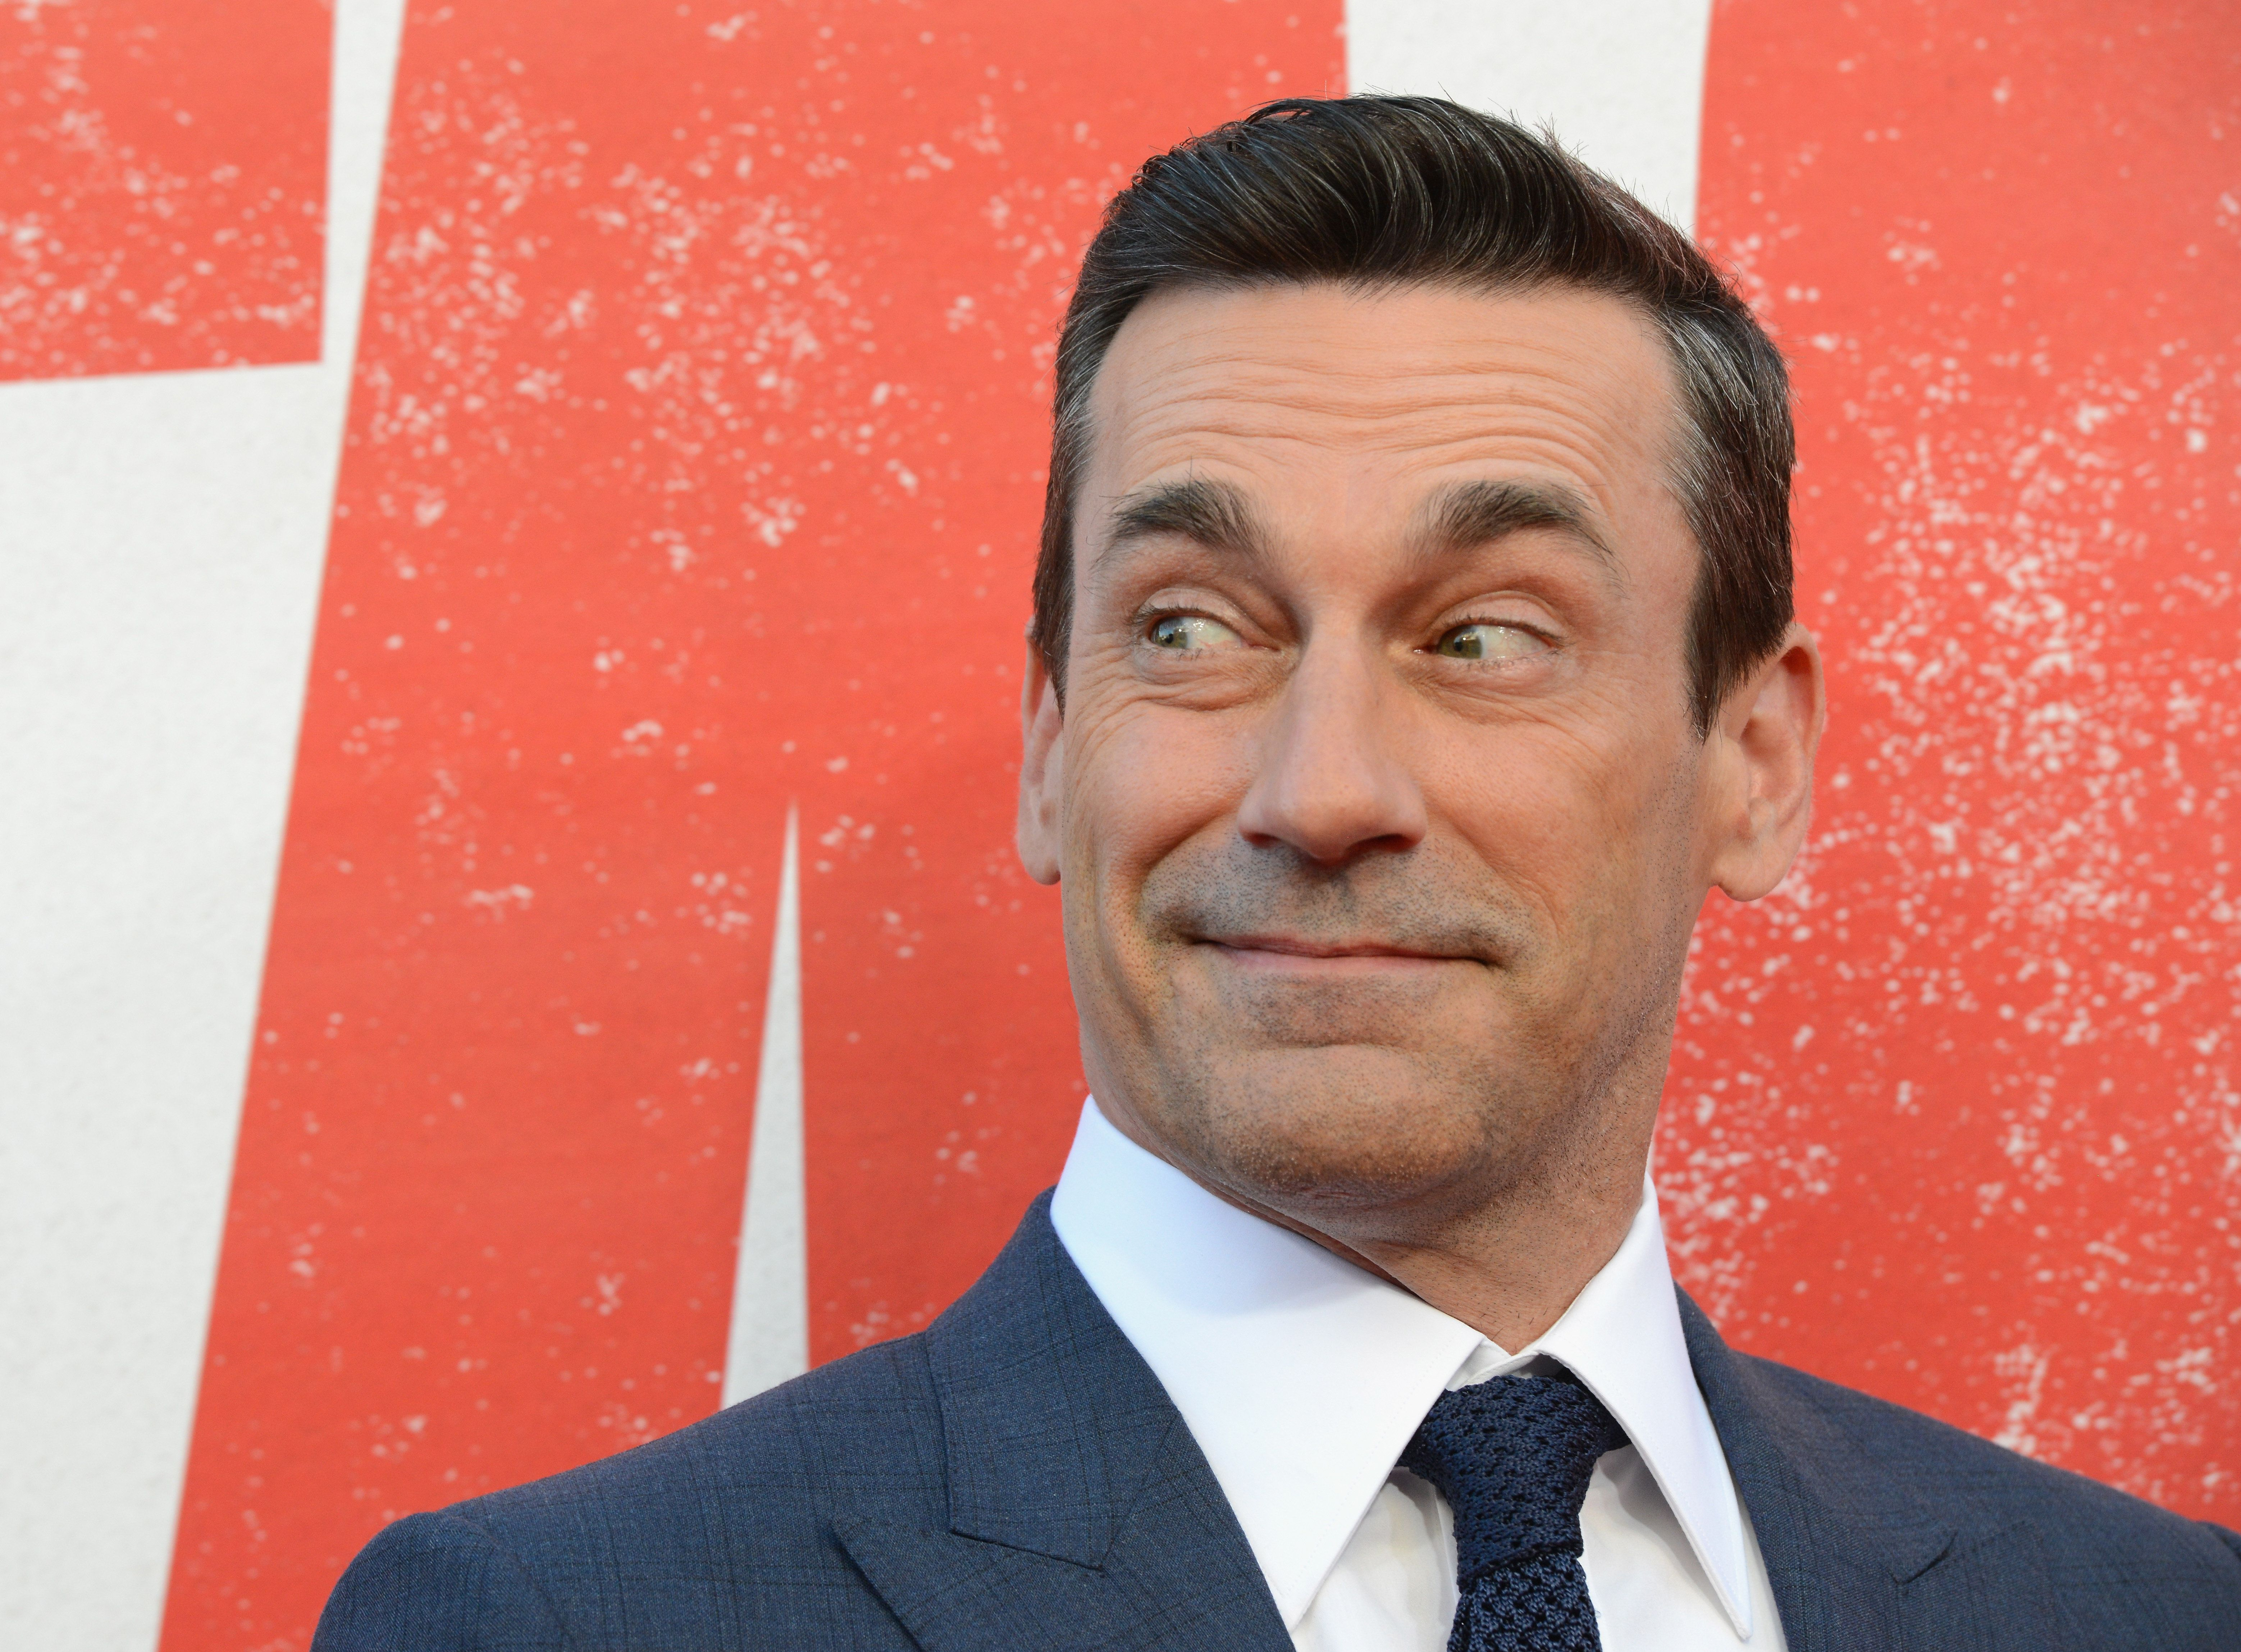 Jon Hamm Nails Why It's So Hypocritical To Shame Therapy